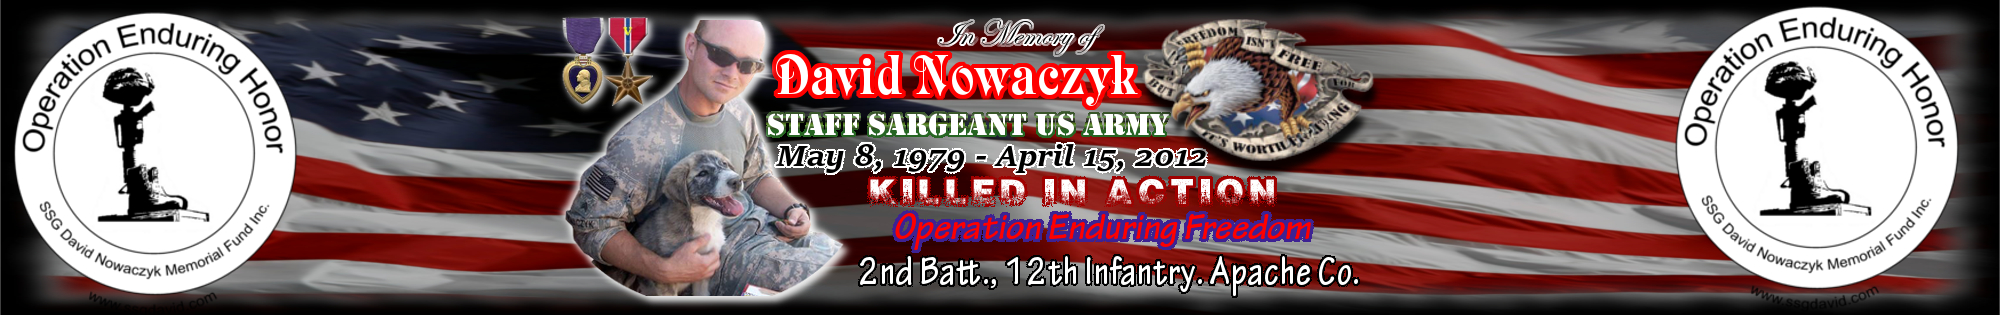 SSG David Nowaczyk Memorial Fund Logo